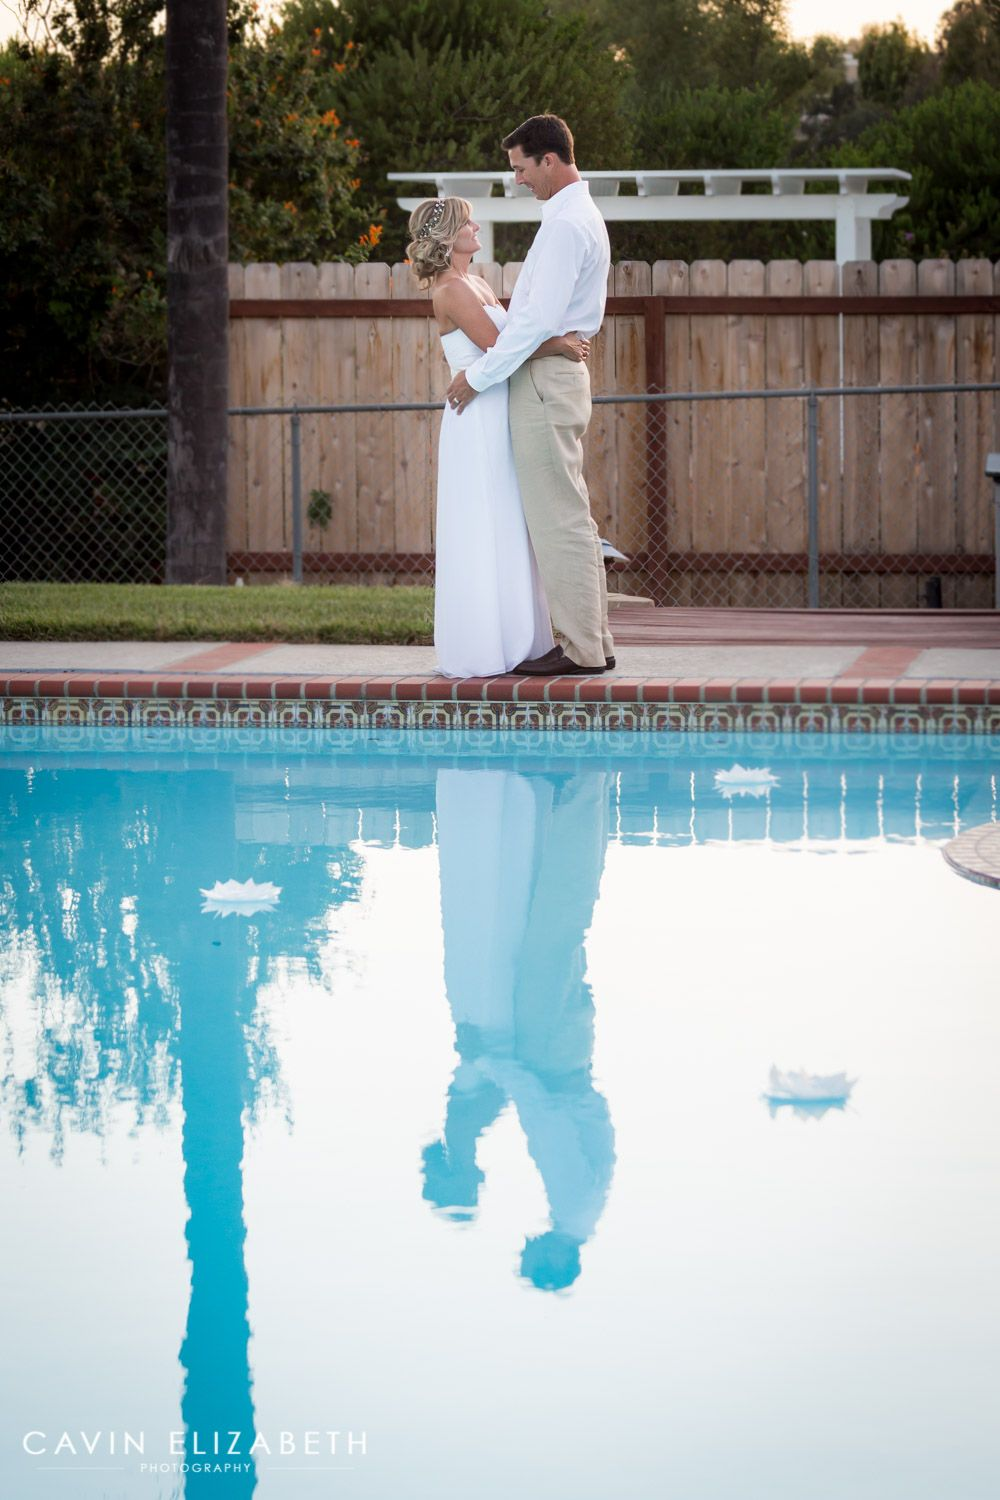 Backyard Wedding In San Diego With The Bride And Groomu0027s Reflection In A  Pool, Cool